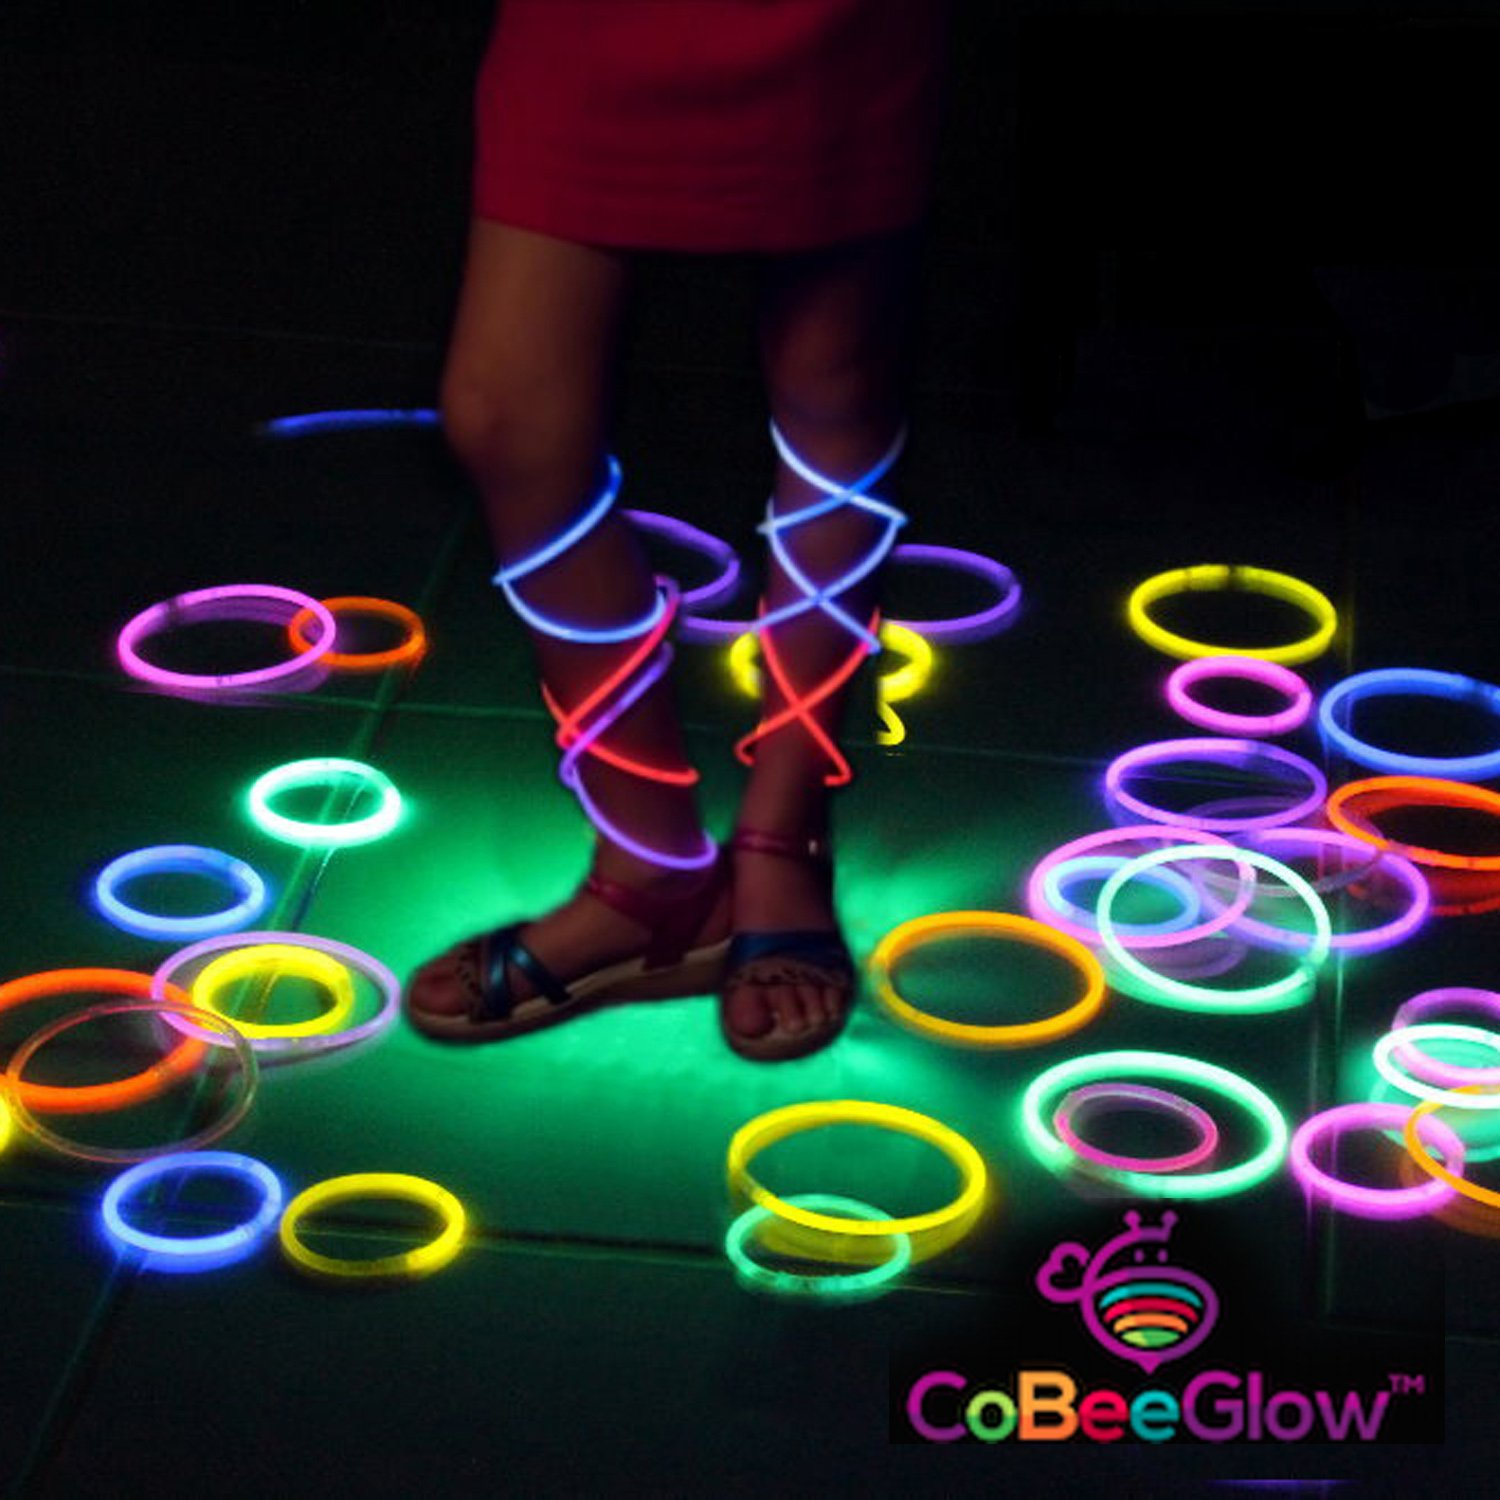 Glow Necklaces Bulk Party Supplies - 100 Glow in the Dark Necklaces - 22 Inch Glow Sticks - Extra Bright Neon Glow Necklace - Strong 6mm Thick - 9 Vibrant Neon Colors - Stuffers for Kids - Mix by CoBeeGlow (Image #9)